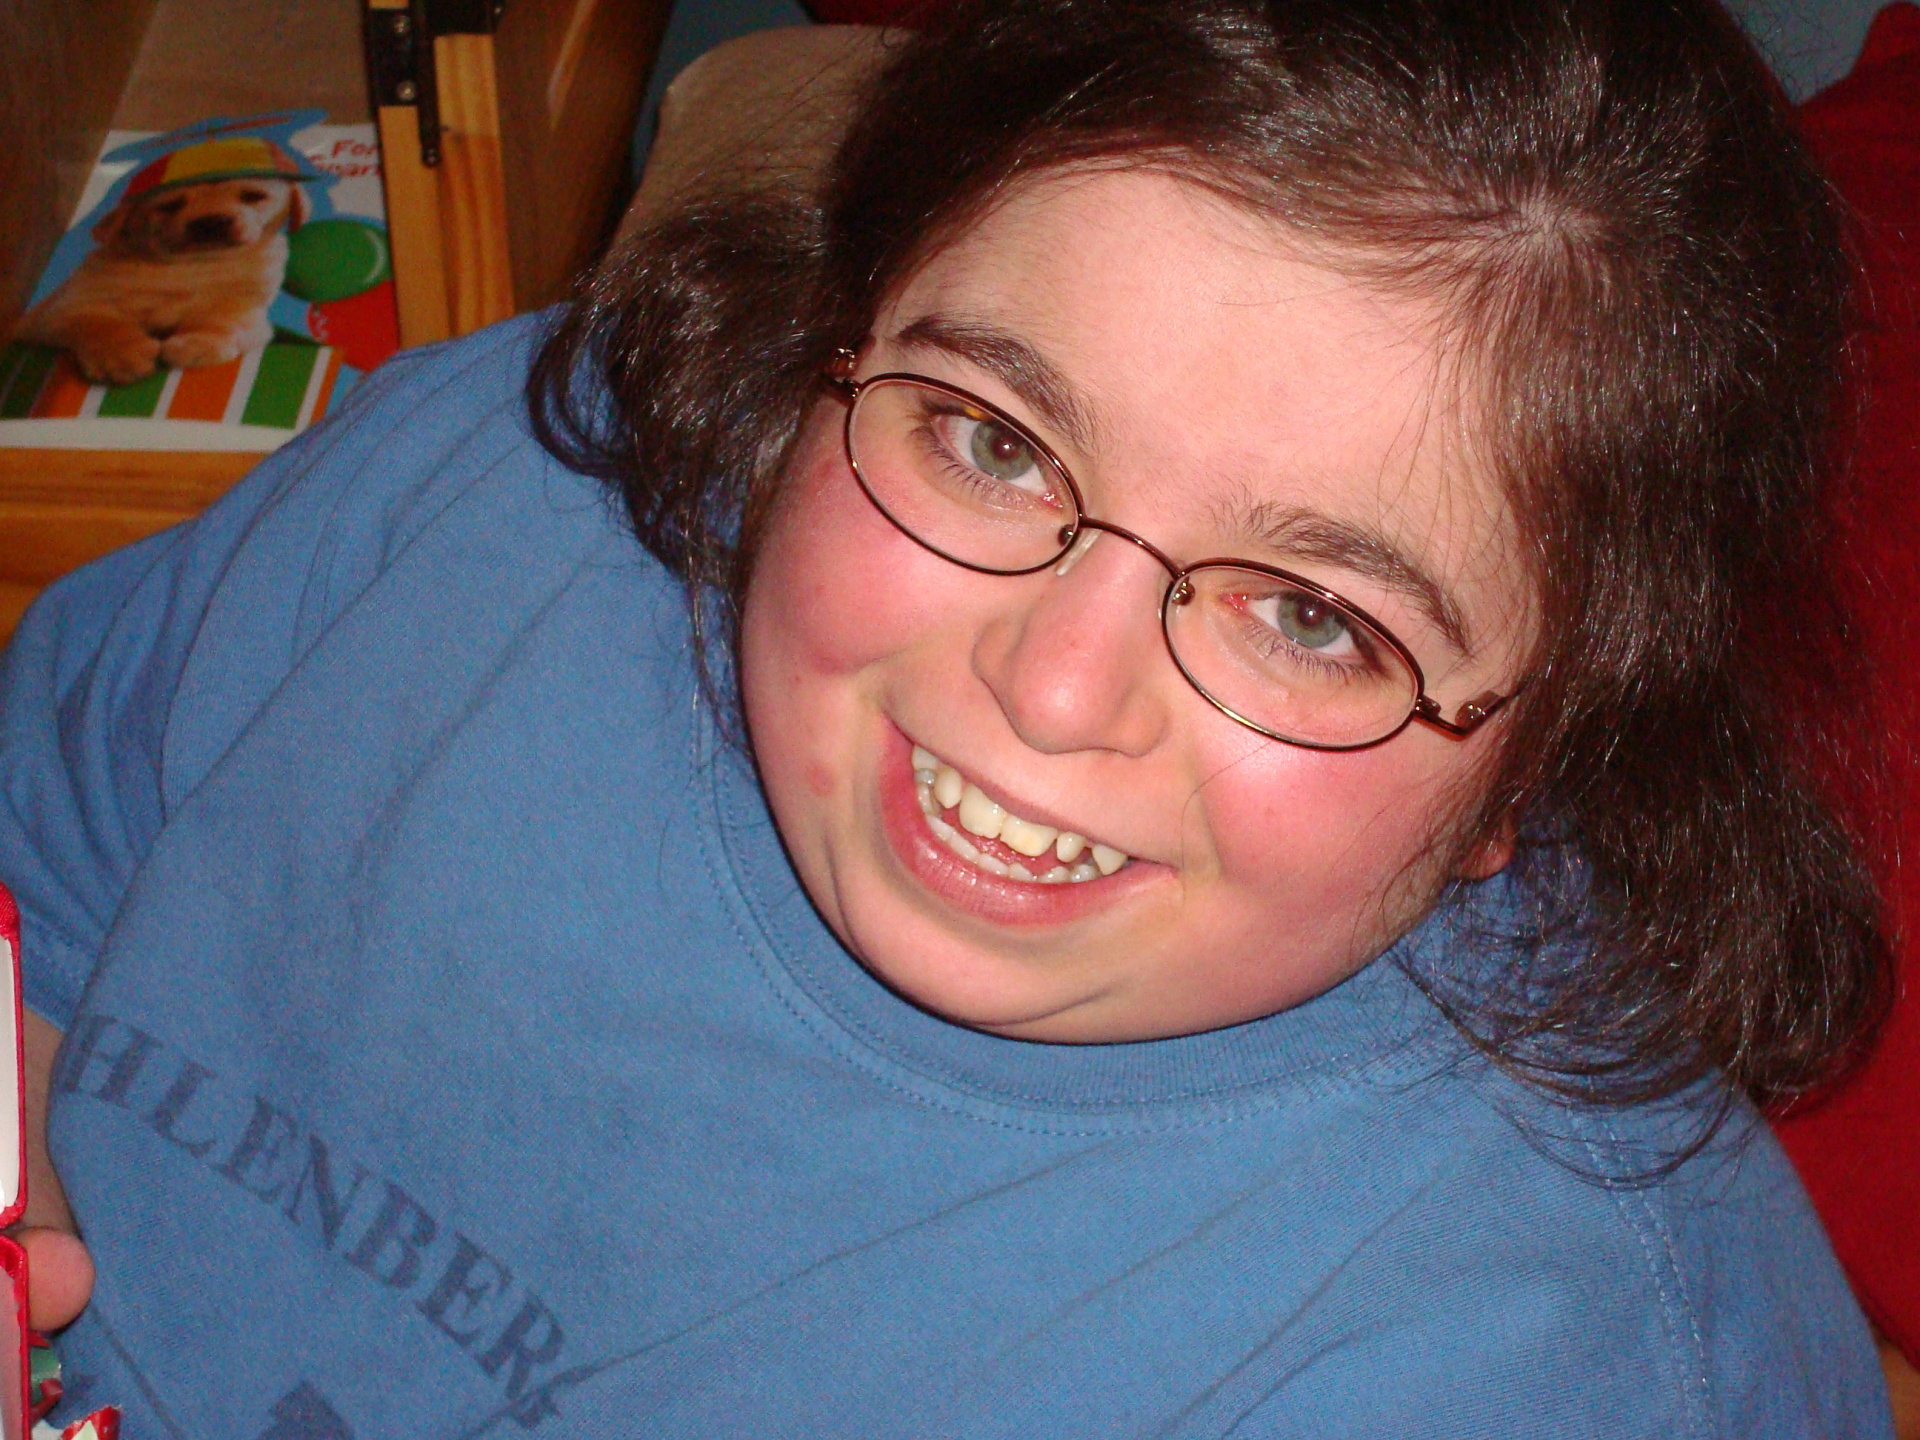 Amber and her beautiful smile